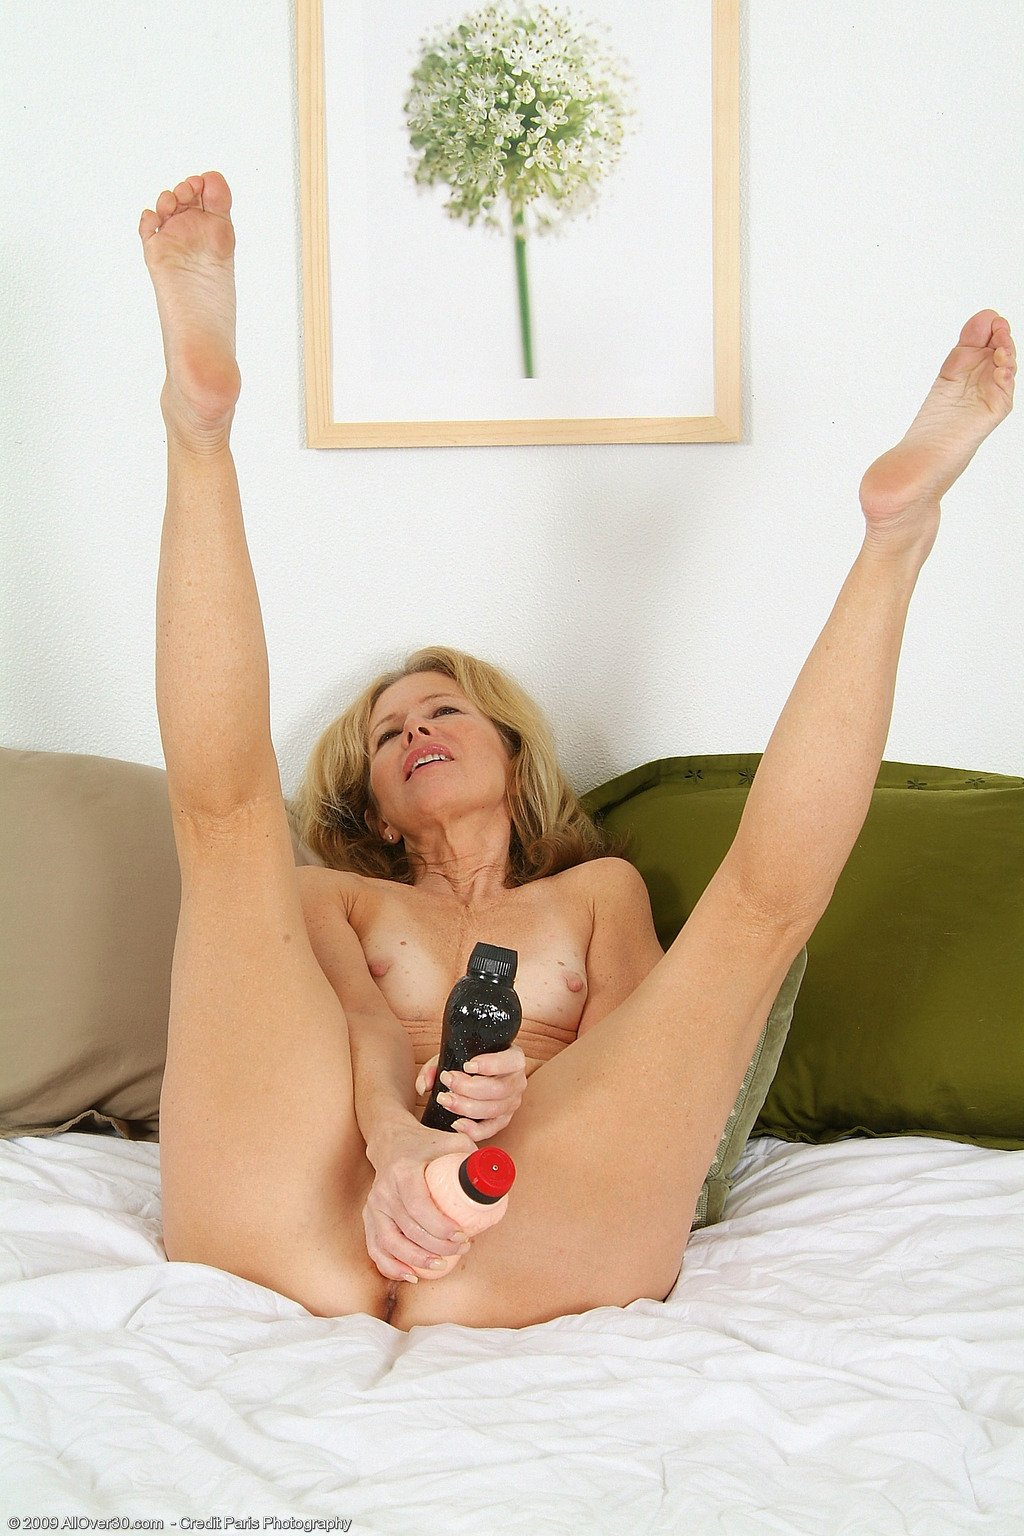 Eat wife squirt